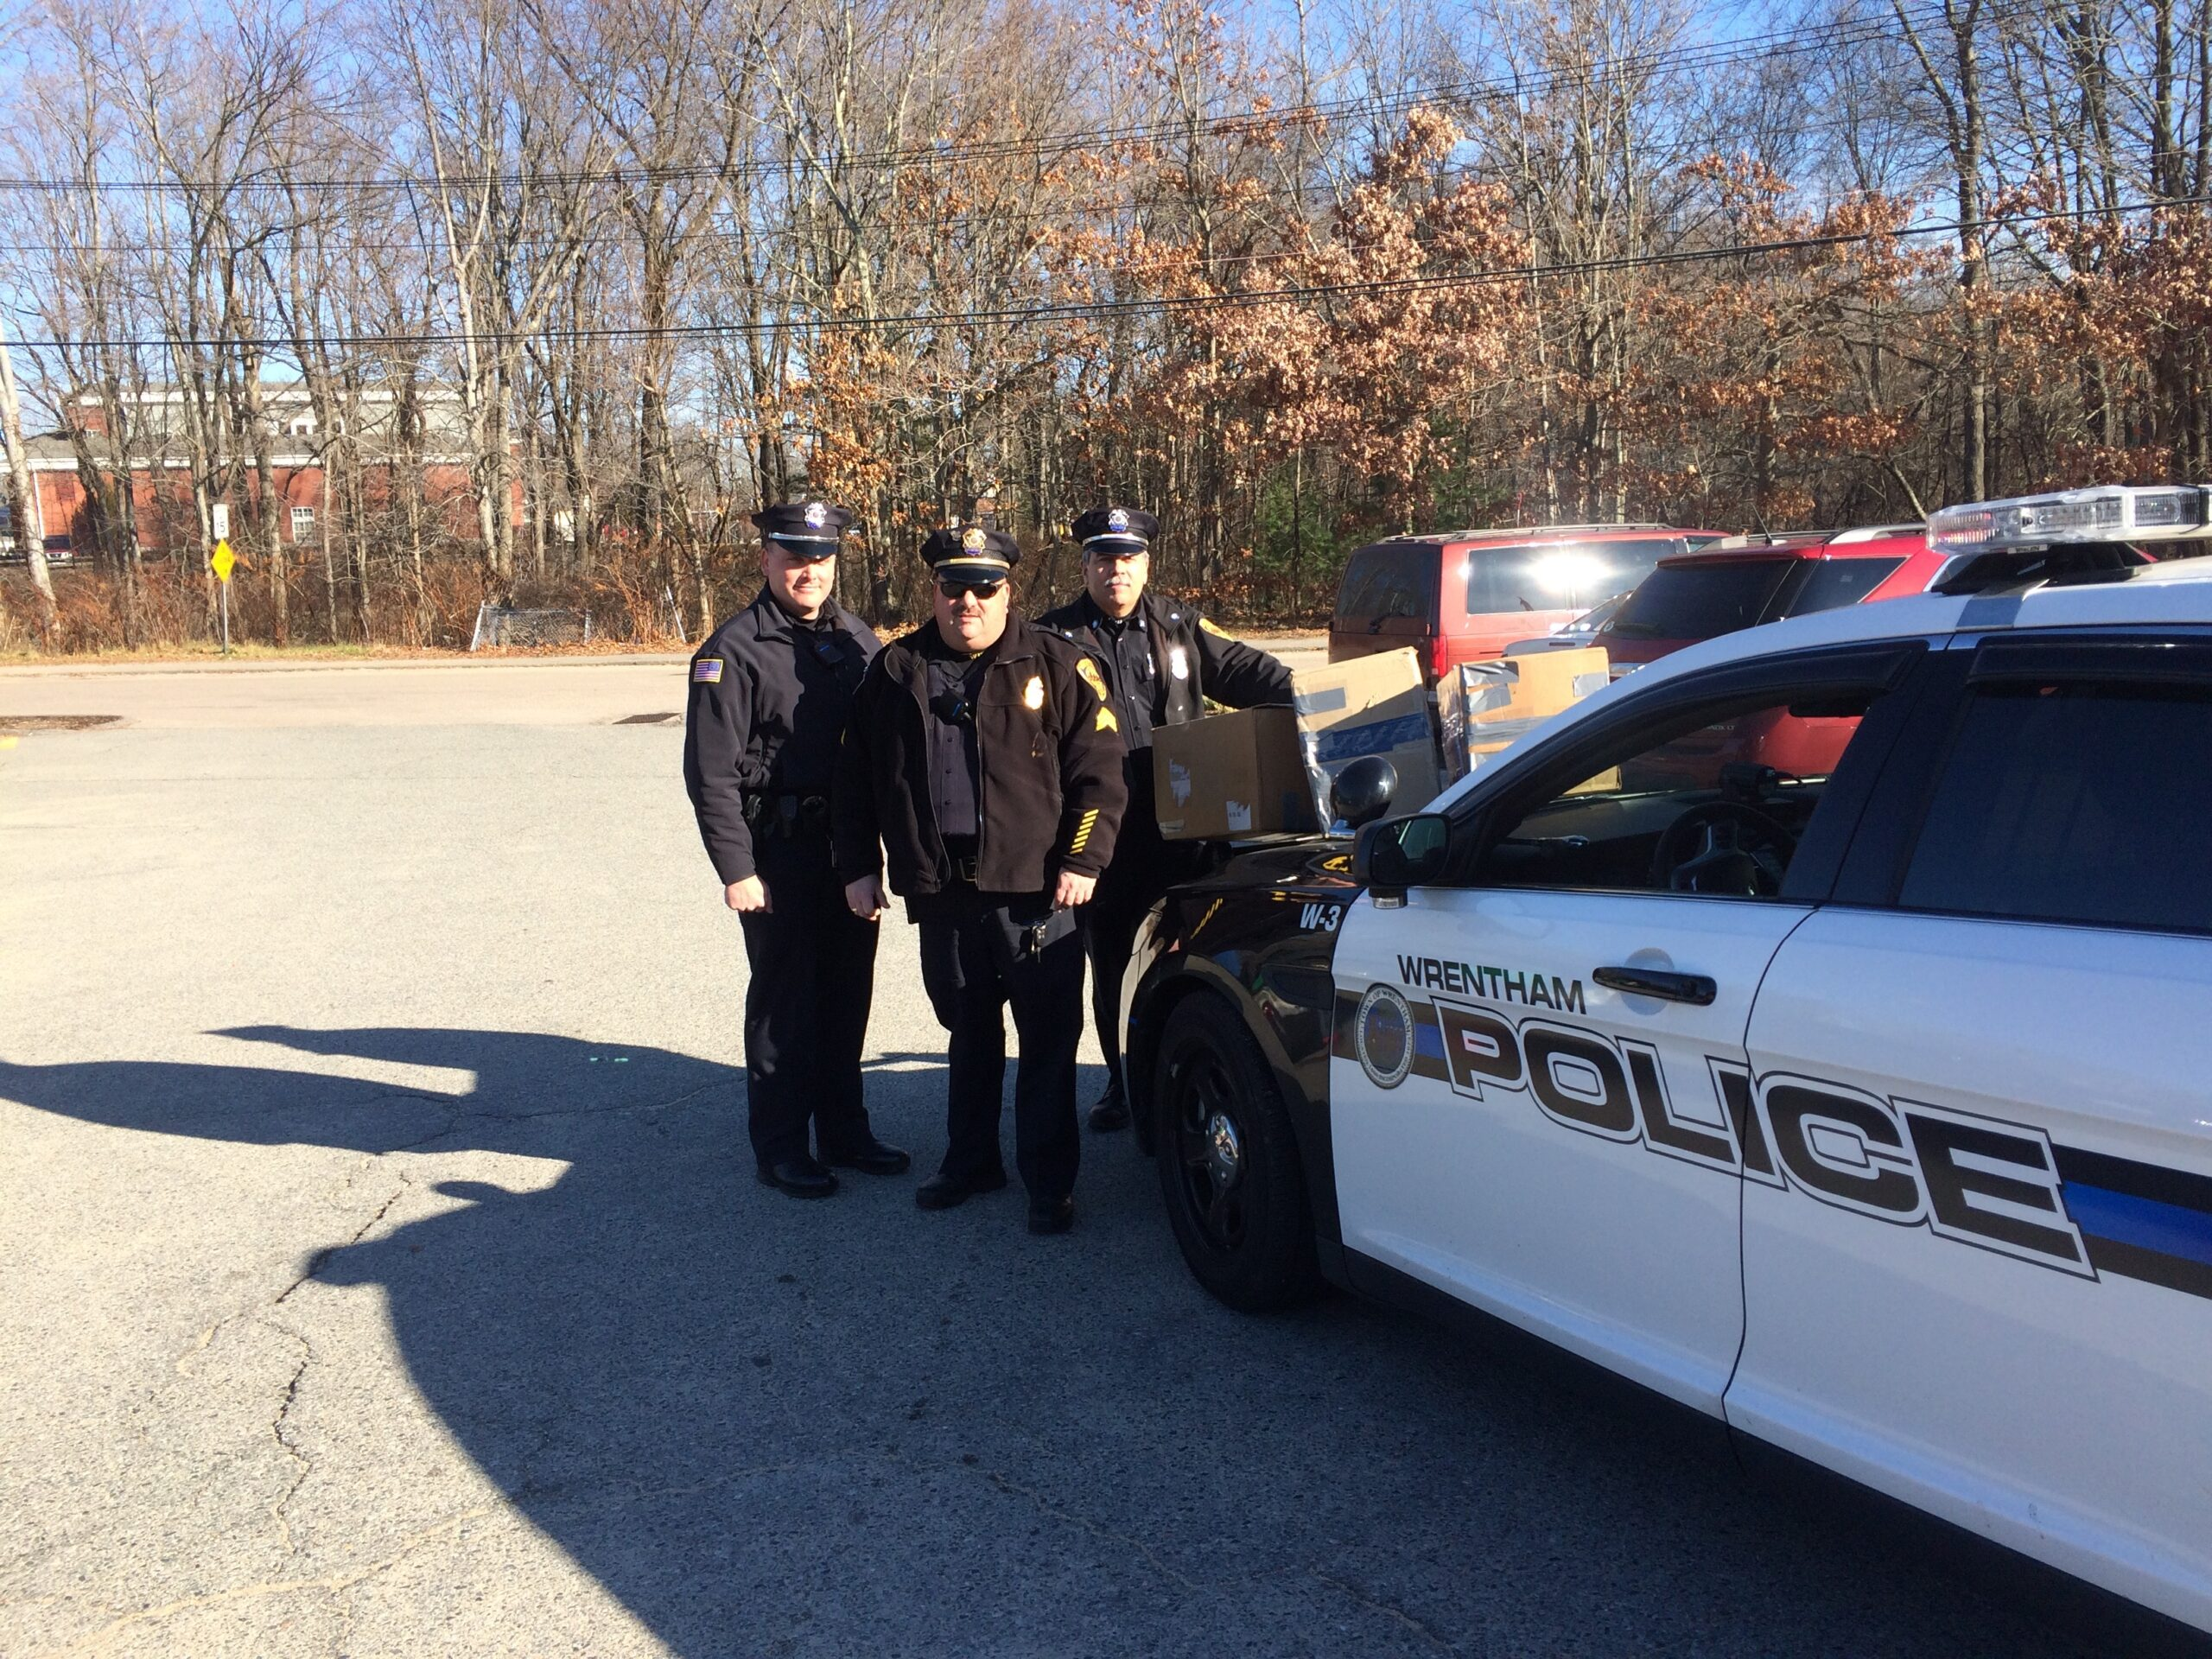 Wrentham Police Association Answers Our Call for Donations